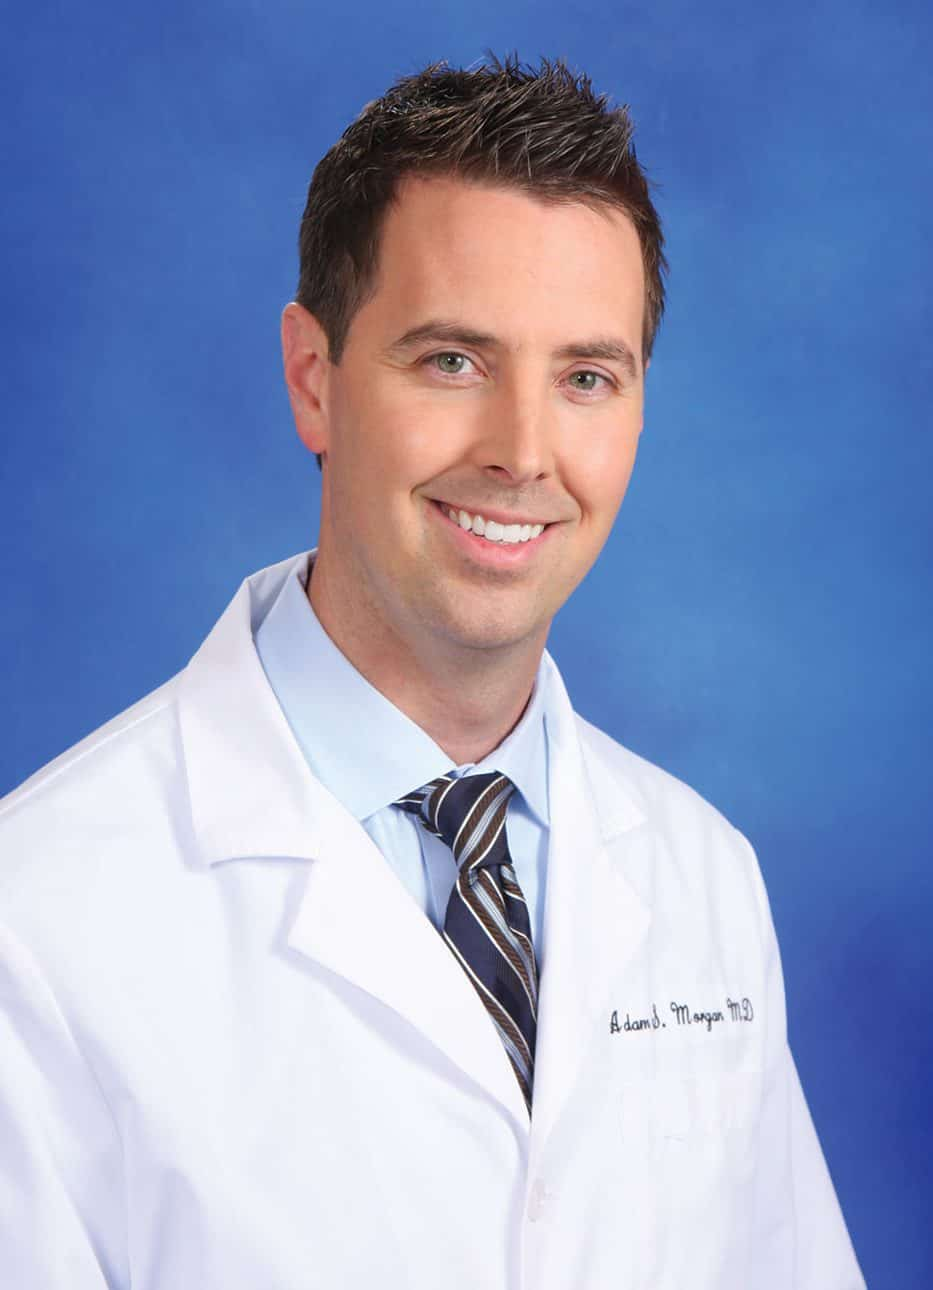 Adam S. Morgan, MD